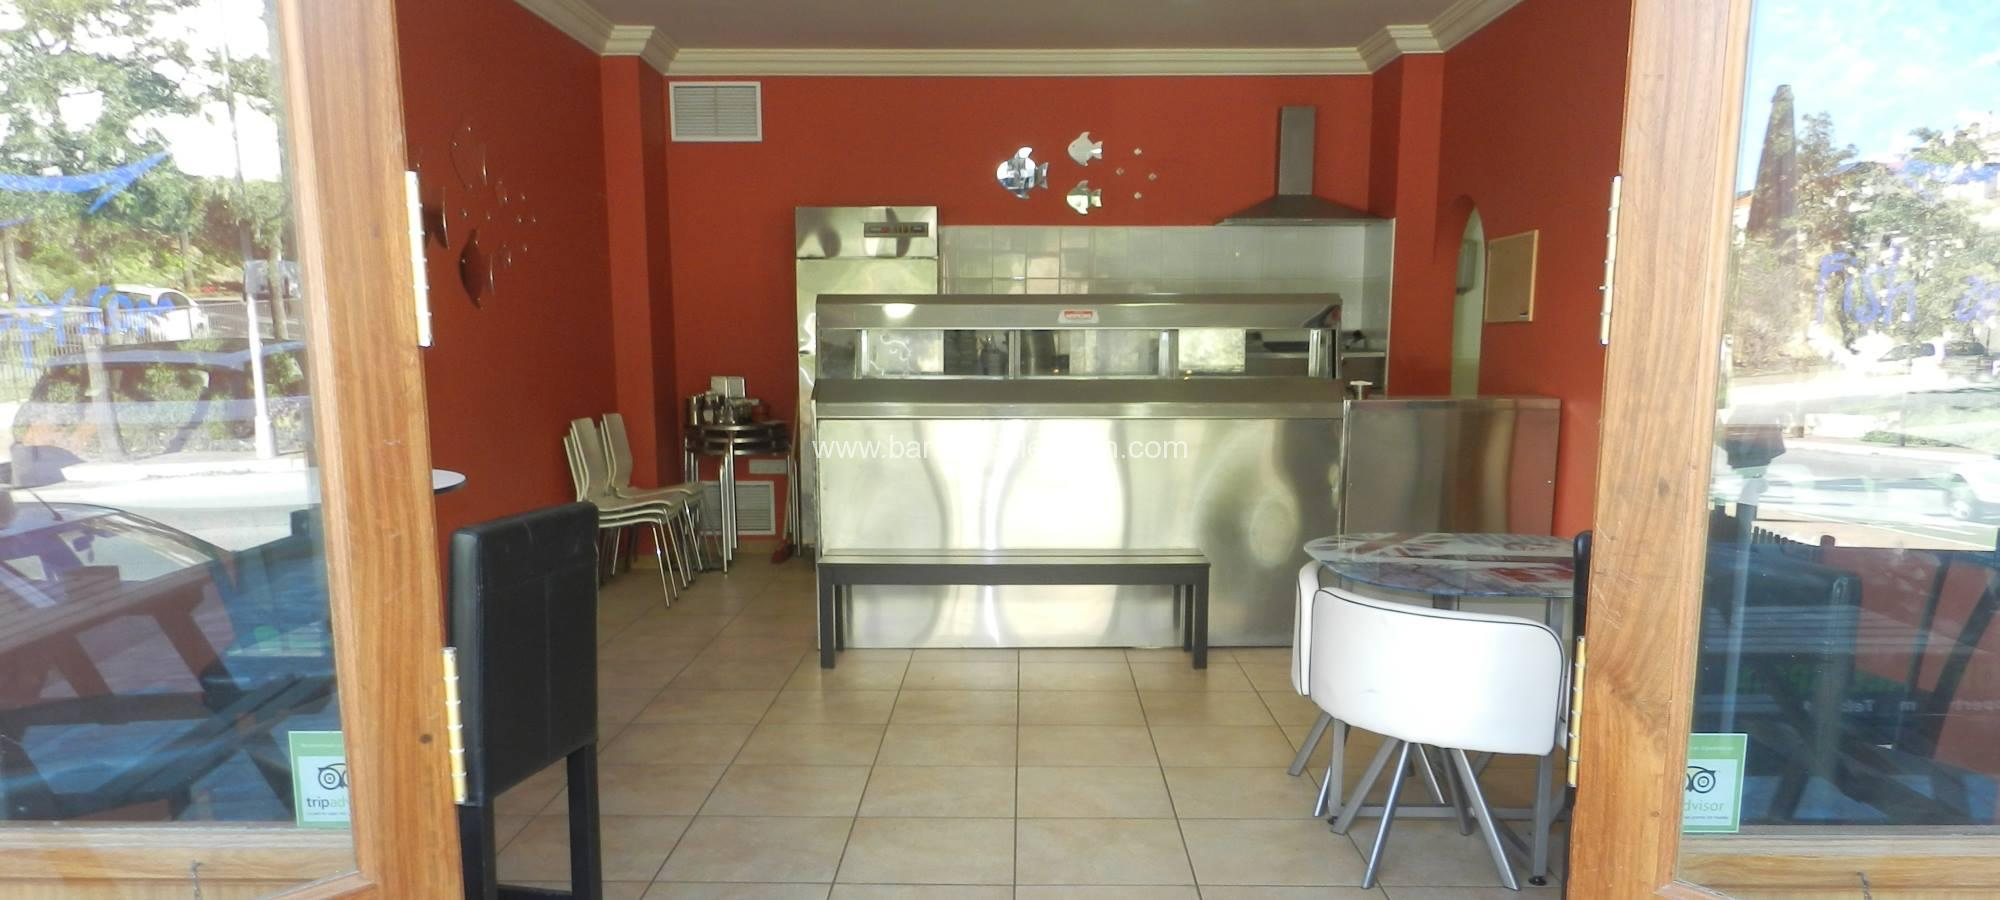 Cafe Bar Takeaway For Sale in Benalmadena, Malaga, Spain